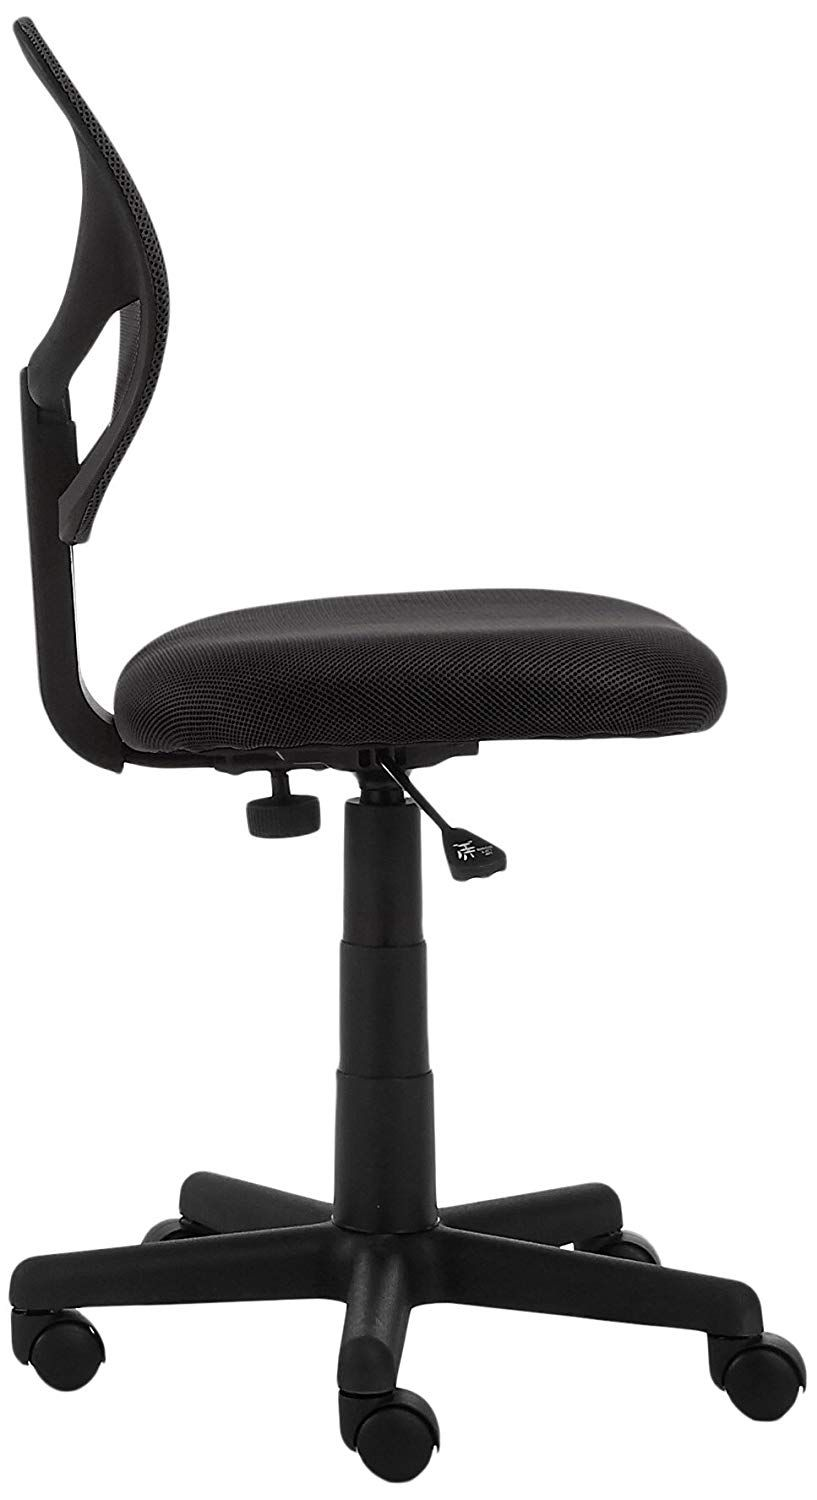 Amazonbasics lowback computer task office desk chair with